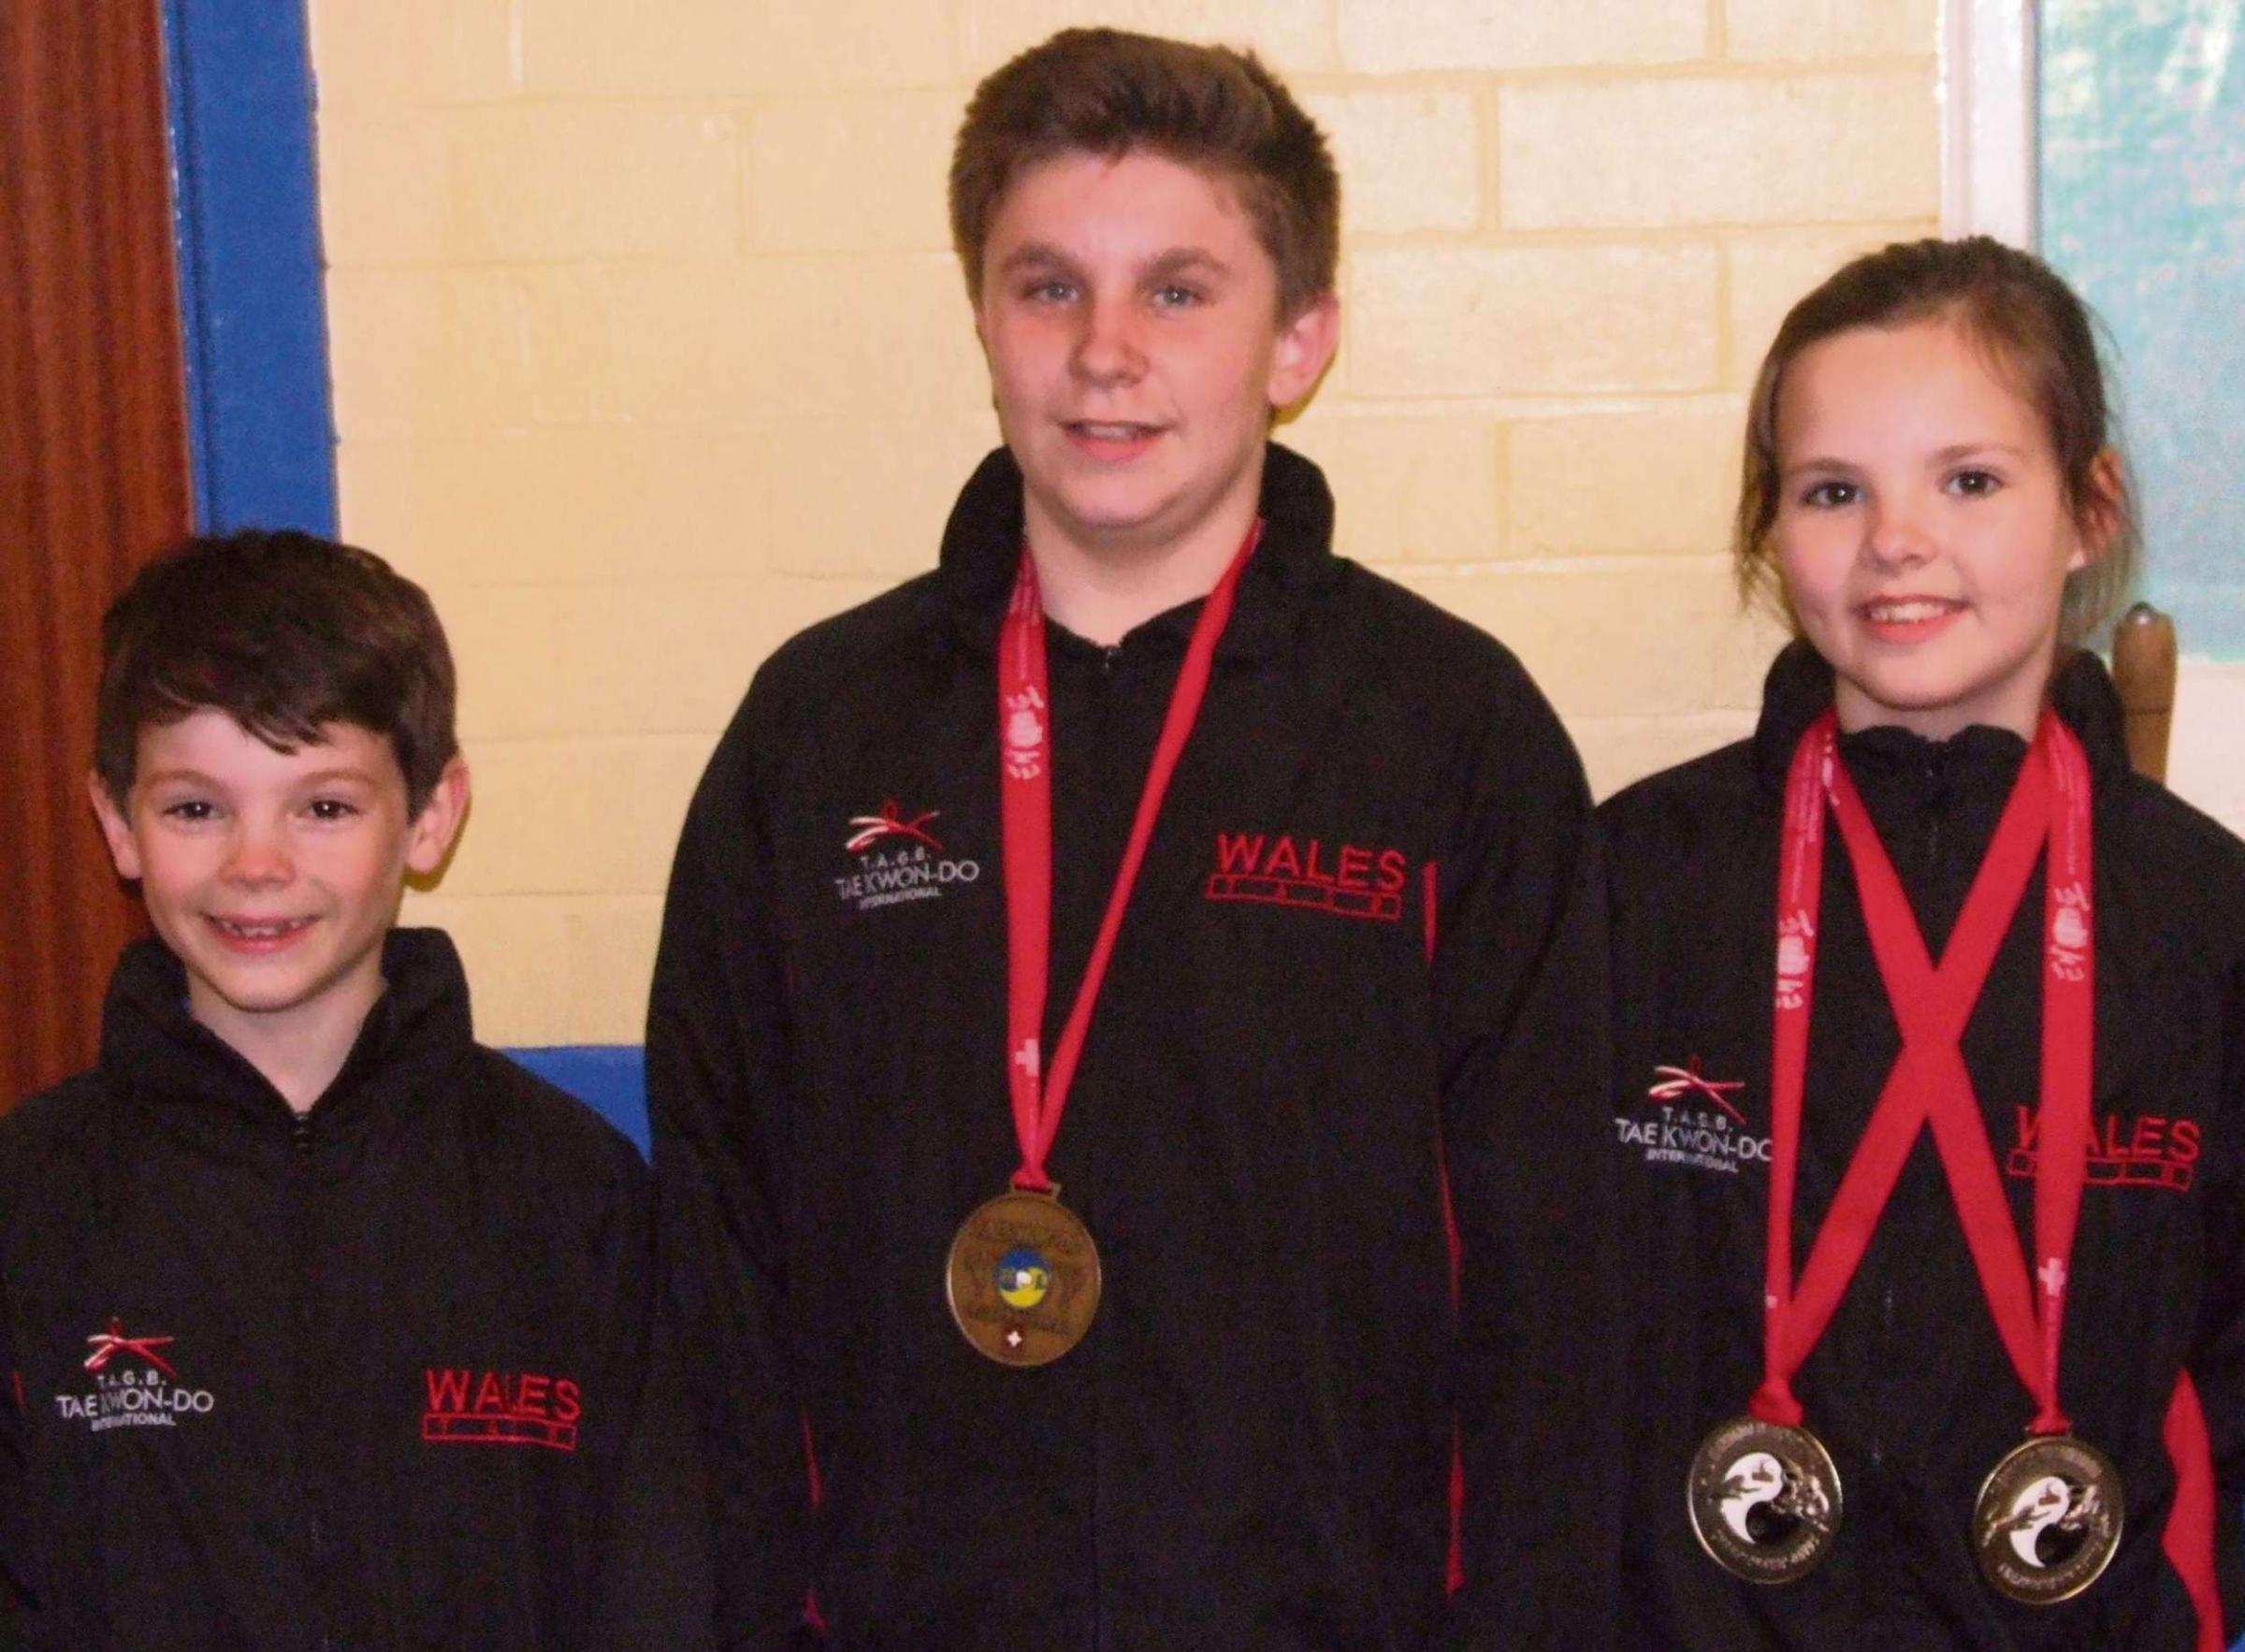 EURO MEDALS: Three talented young local taekwondo students - Harri Burmingham, Ashton Curnick and Menna Burmingham - have recently returned from the European Taekwondo Championships in Davos, Switzerland with an array of medals.